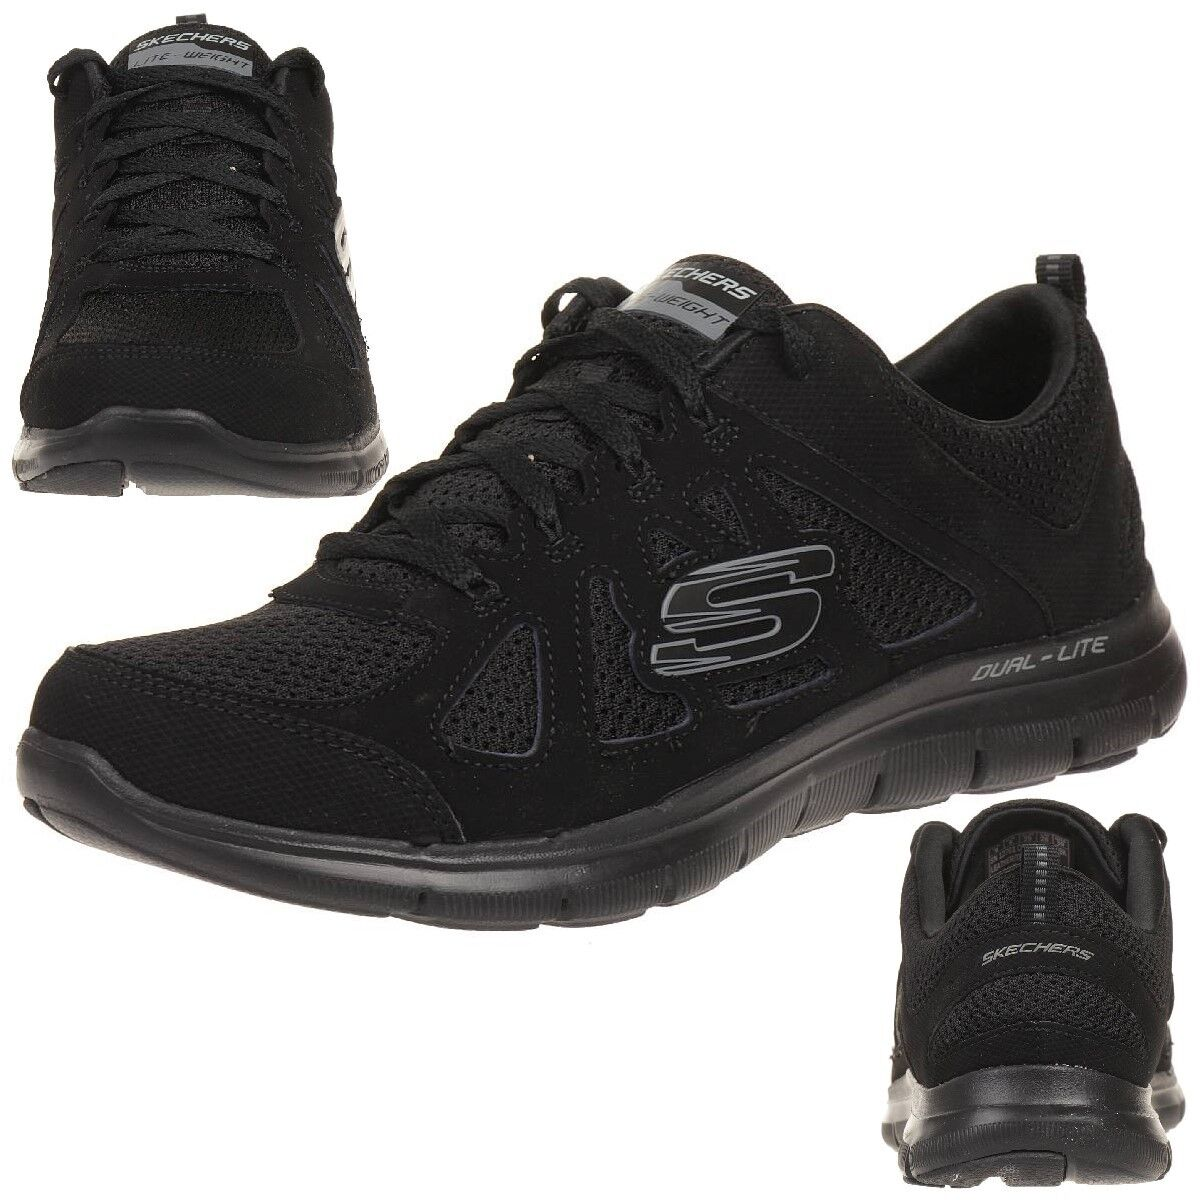 Skechers Flex appeal Lite 2.0 simplista señora fitness zapatos Lite appeal weight bbk c94429